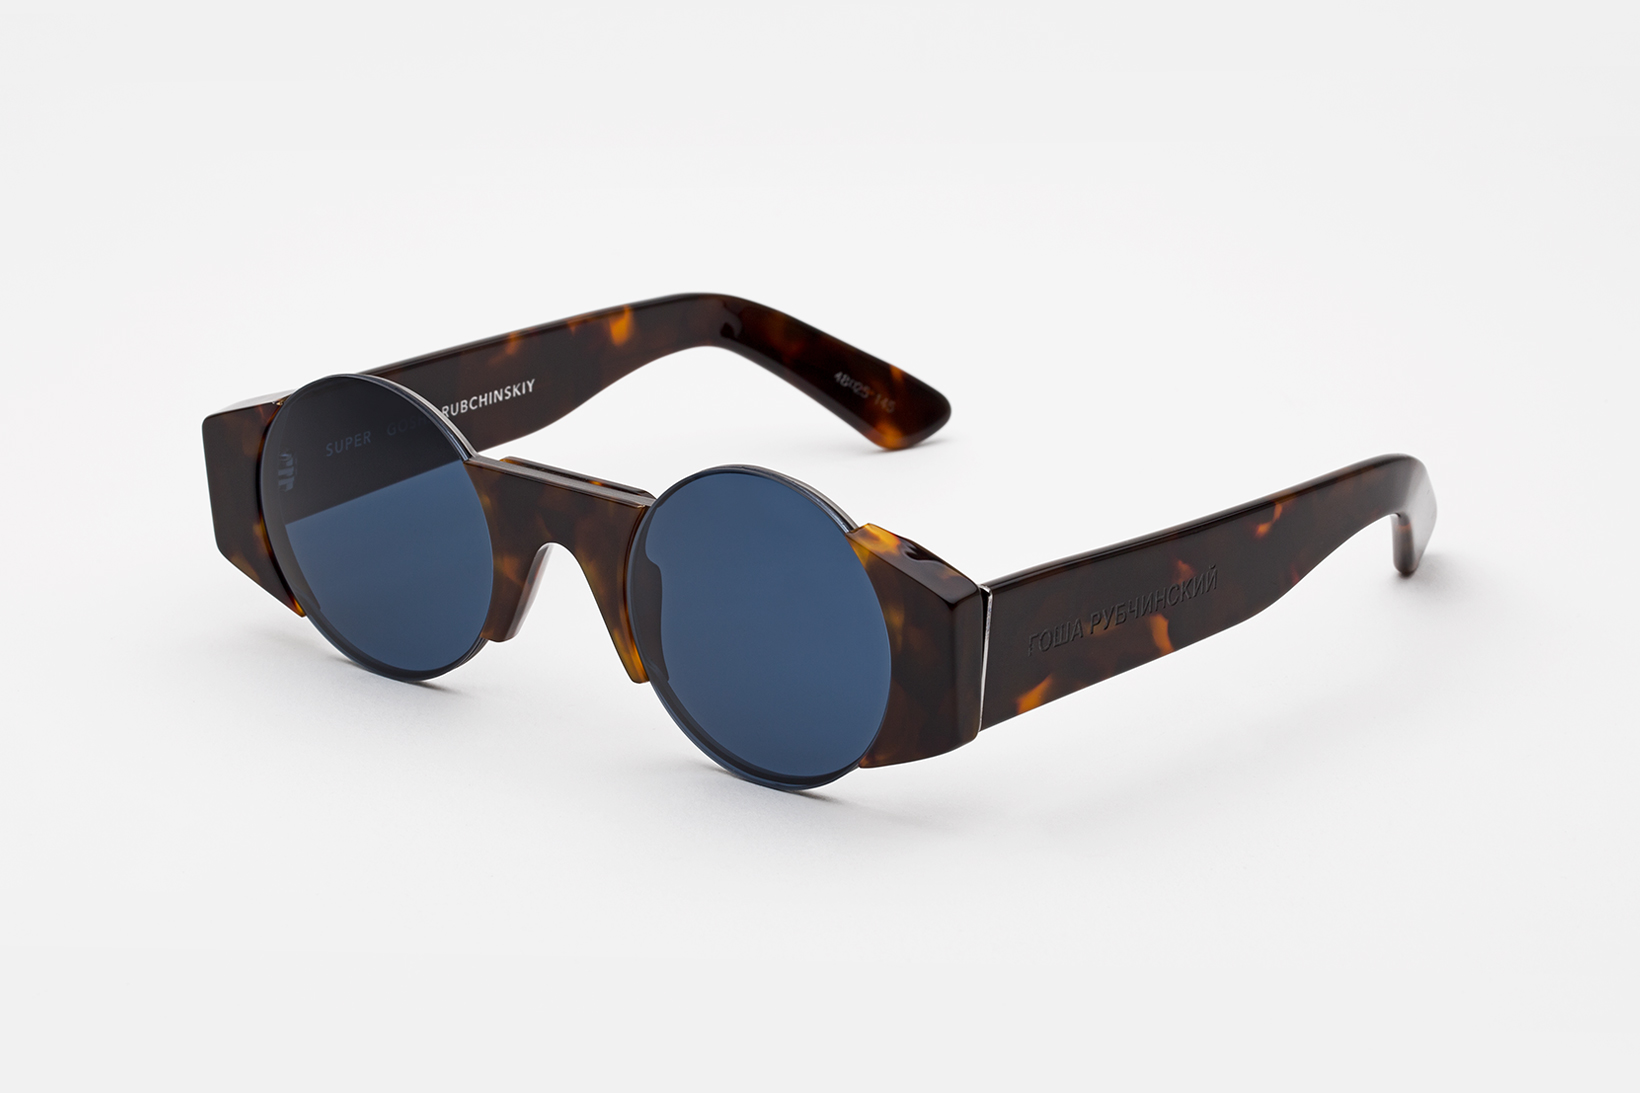 Gosha Rubchinksiy x SUPER by RETROSUPERFUTURE Eyewear Collection - 1844727